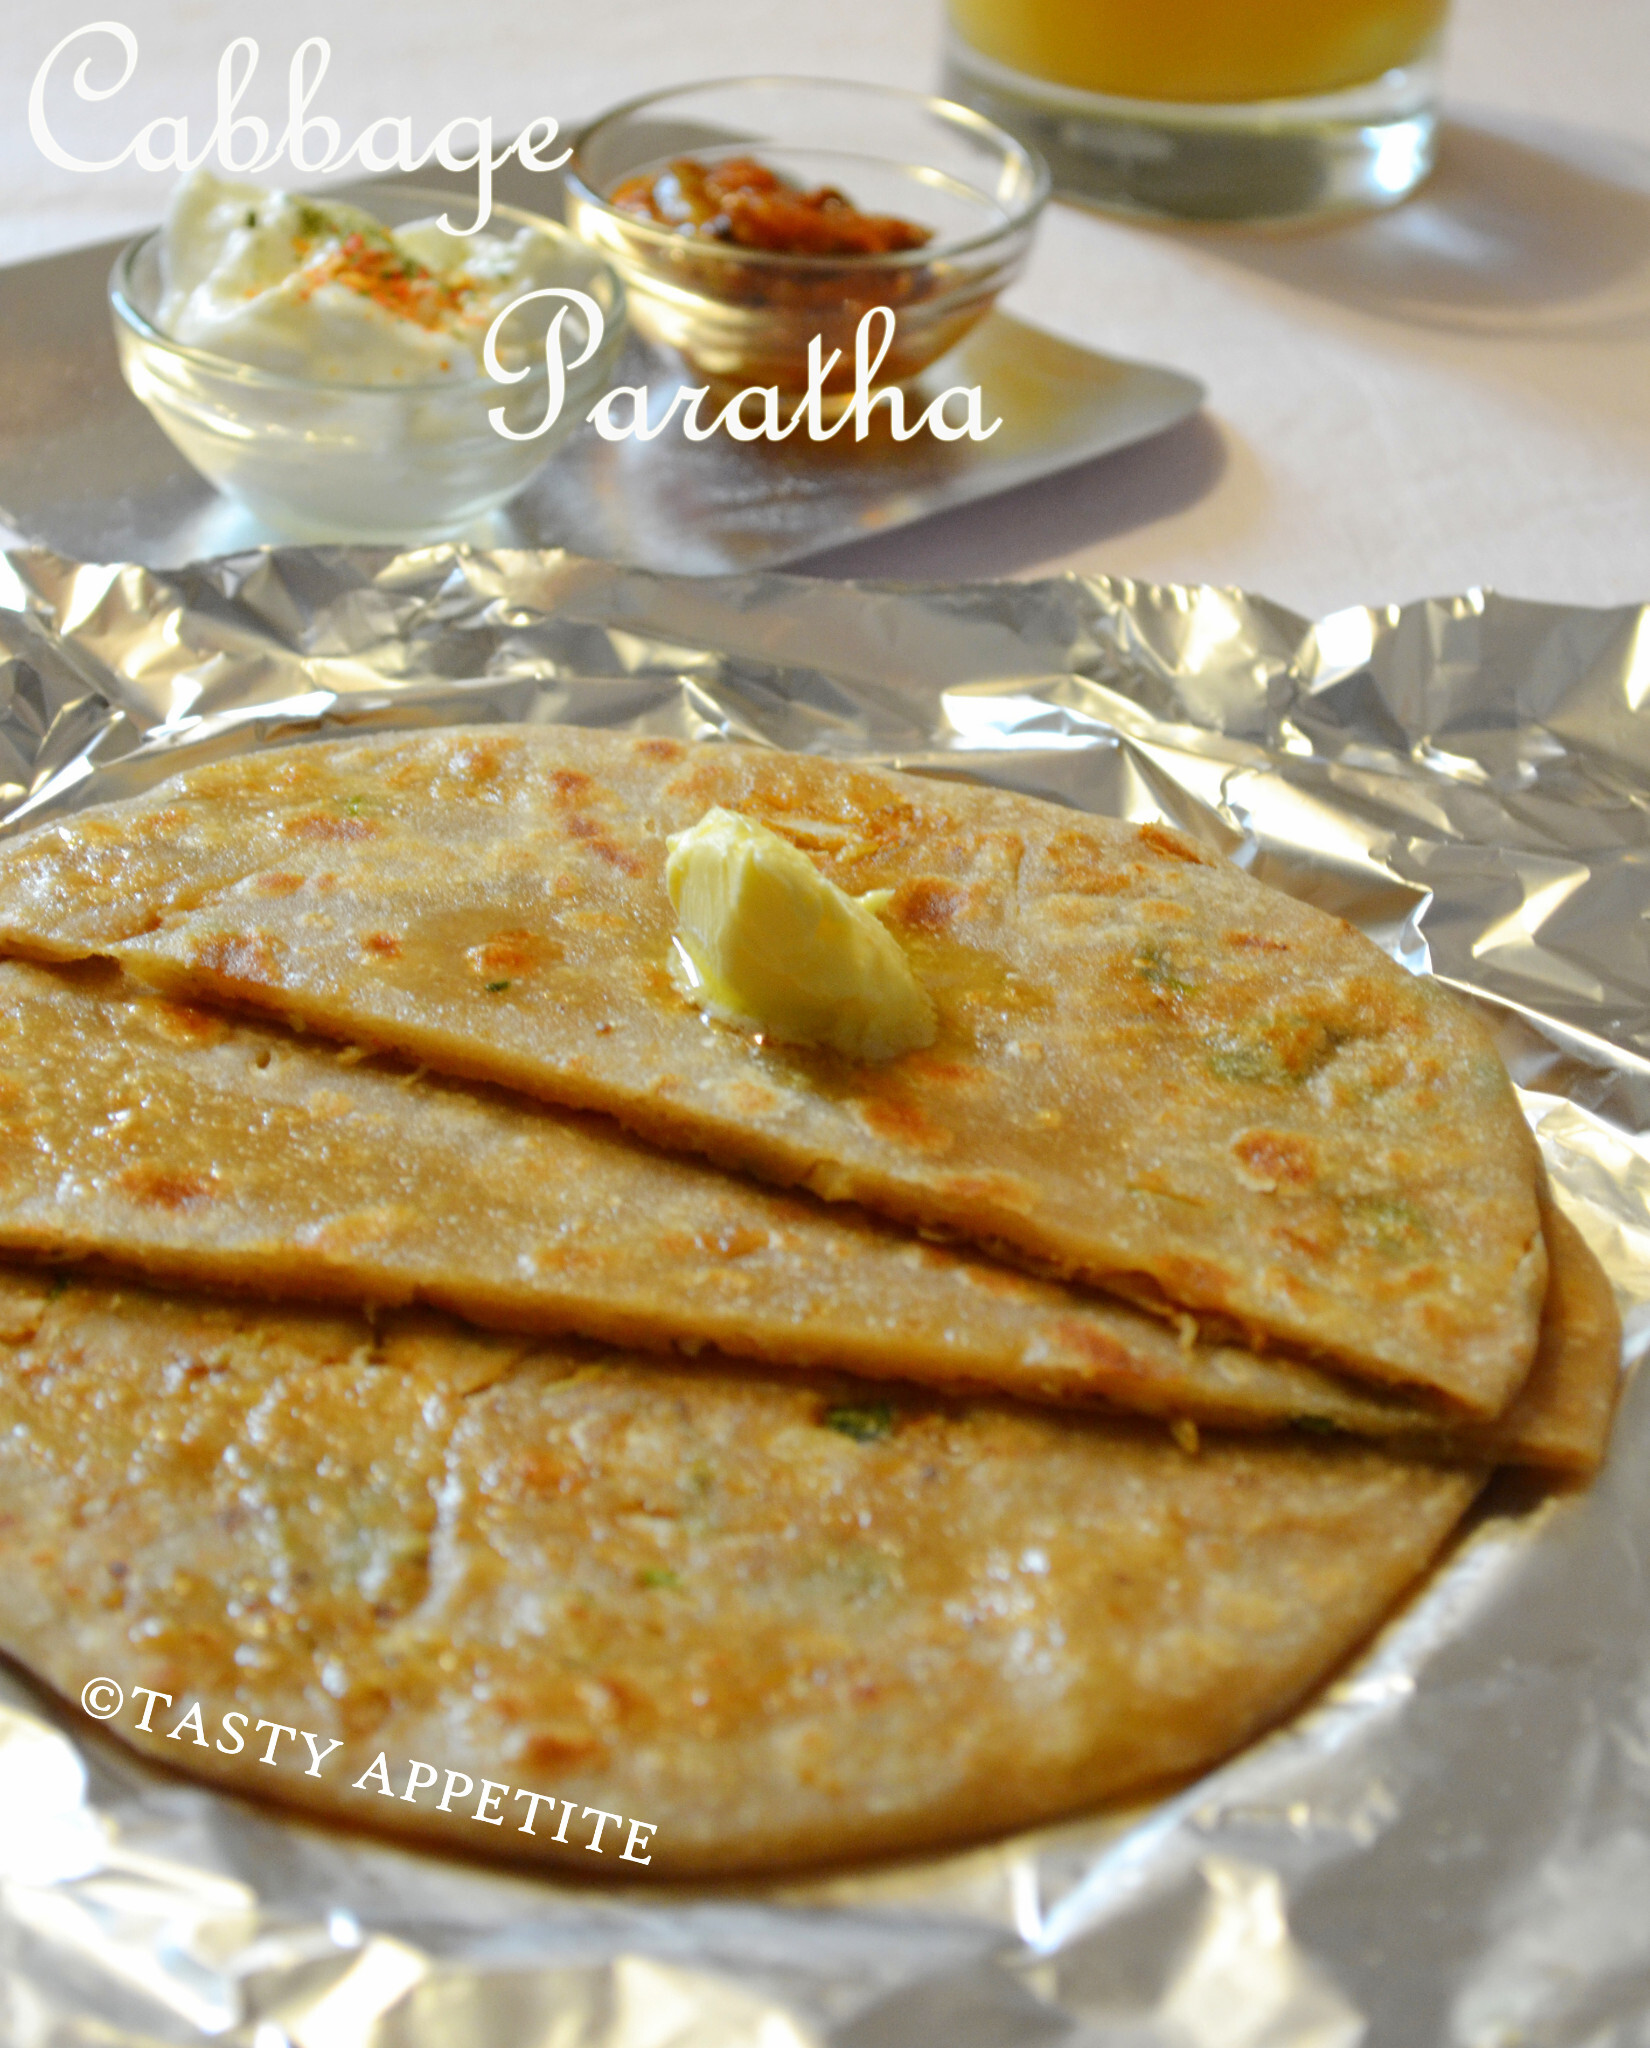 How to make Cabbage Paratha / Healthy Paratha Recipes: